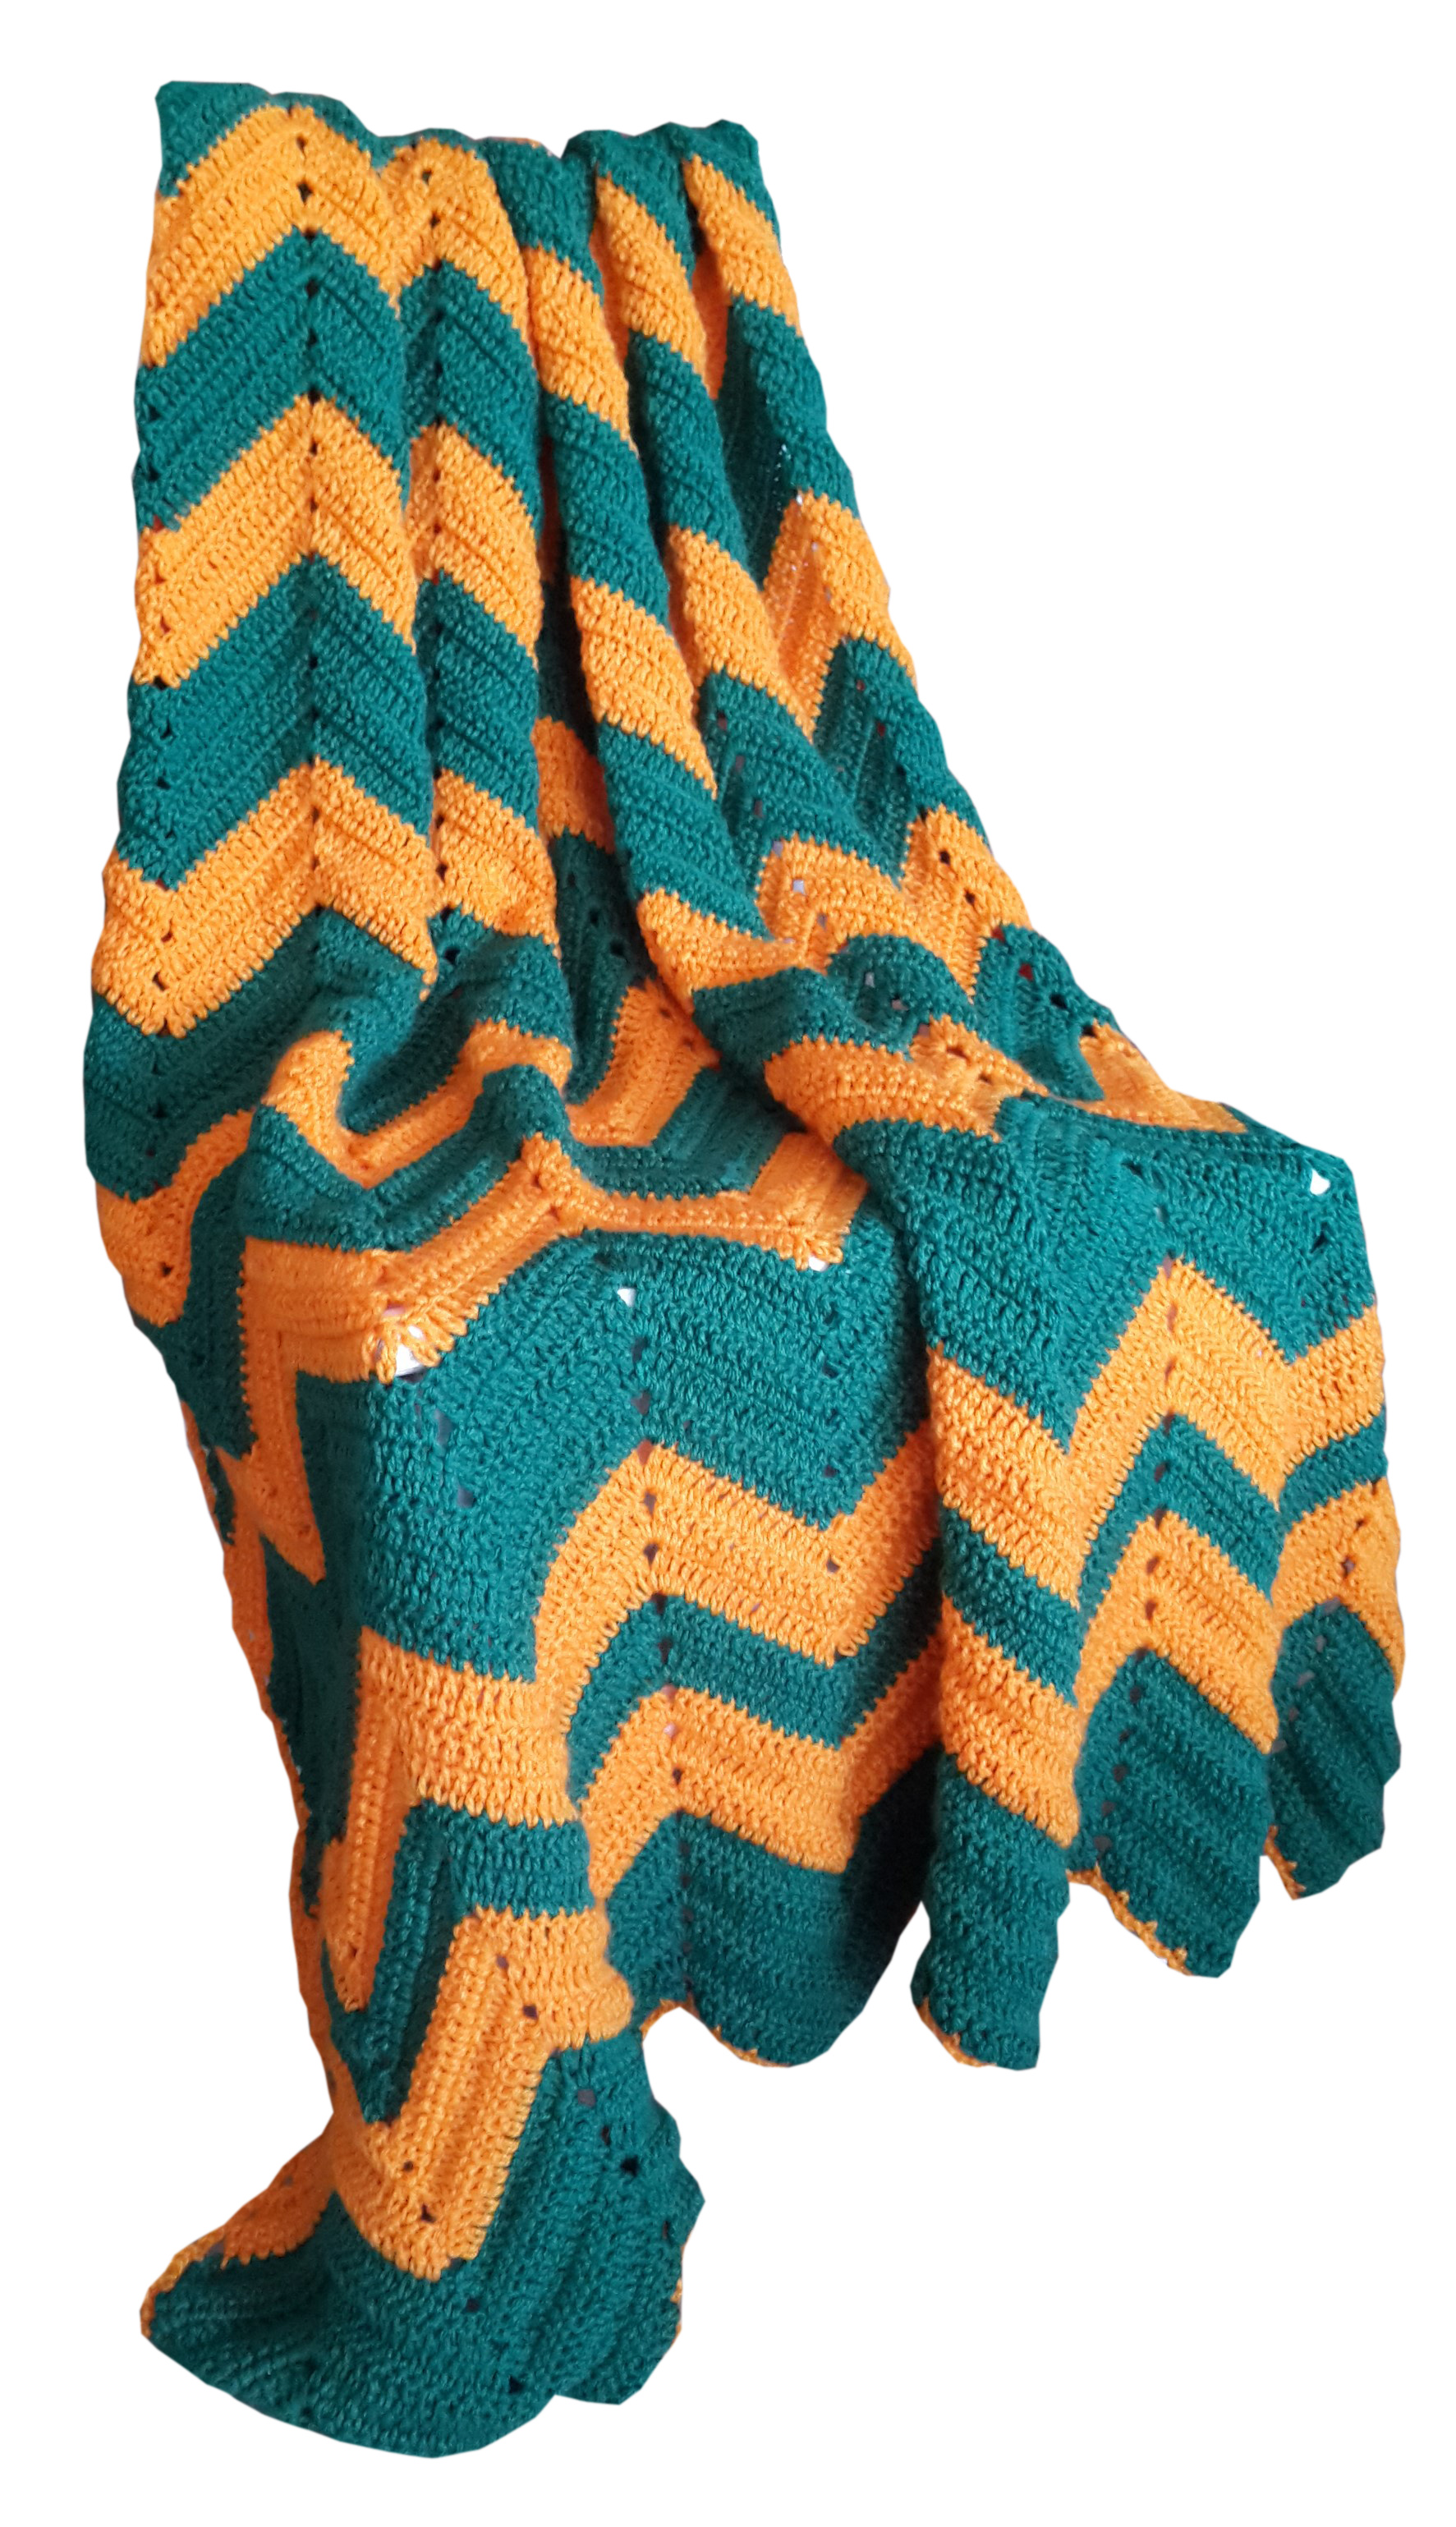 Vintage Look Zig Zag Crochet Blanket In South African Green And Gold